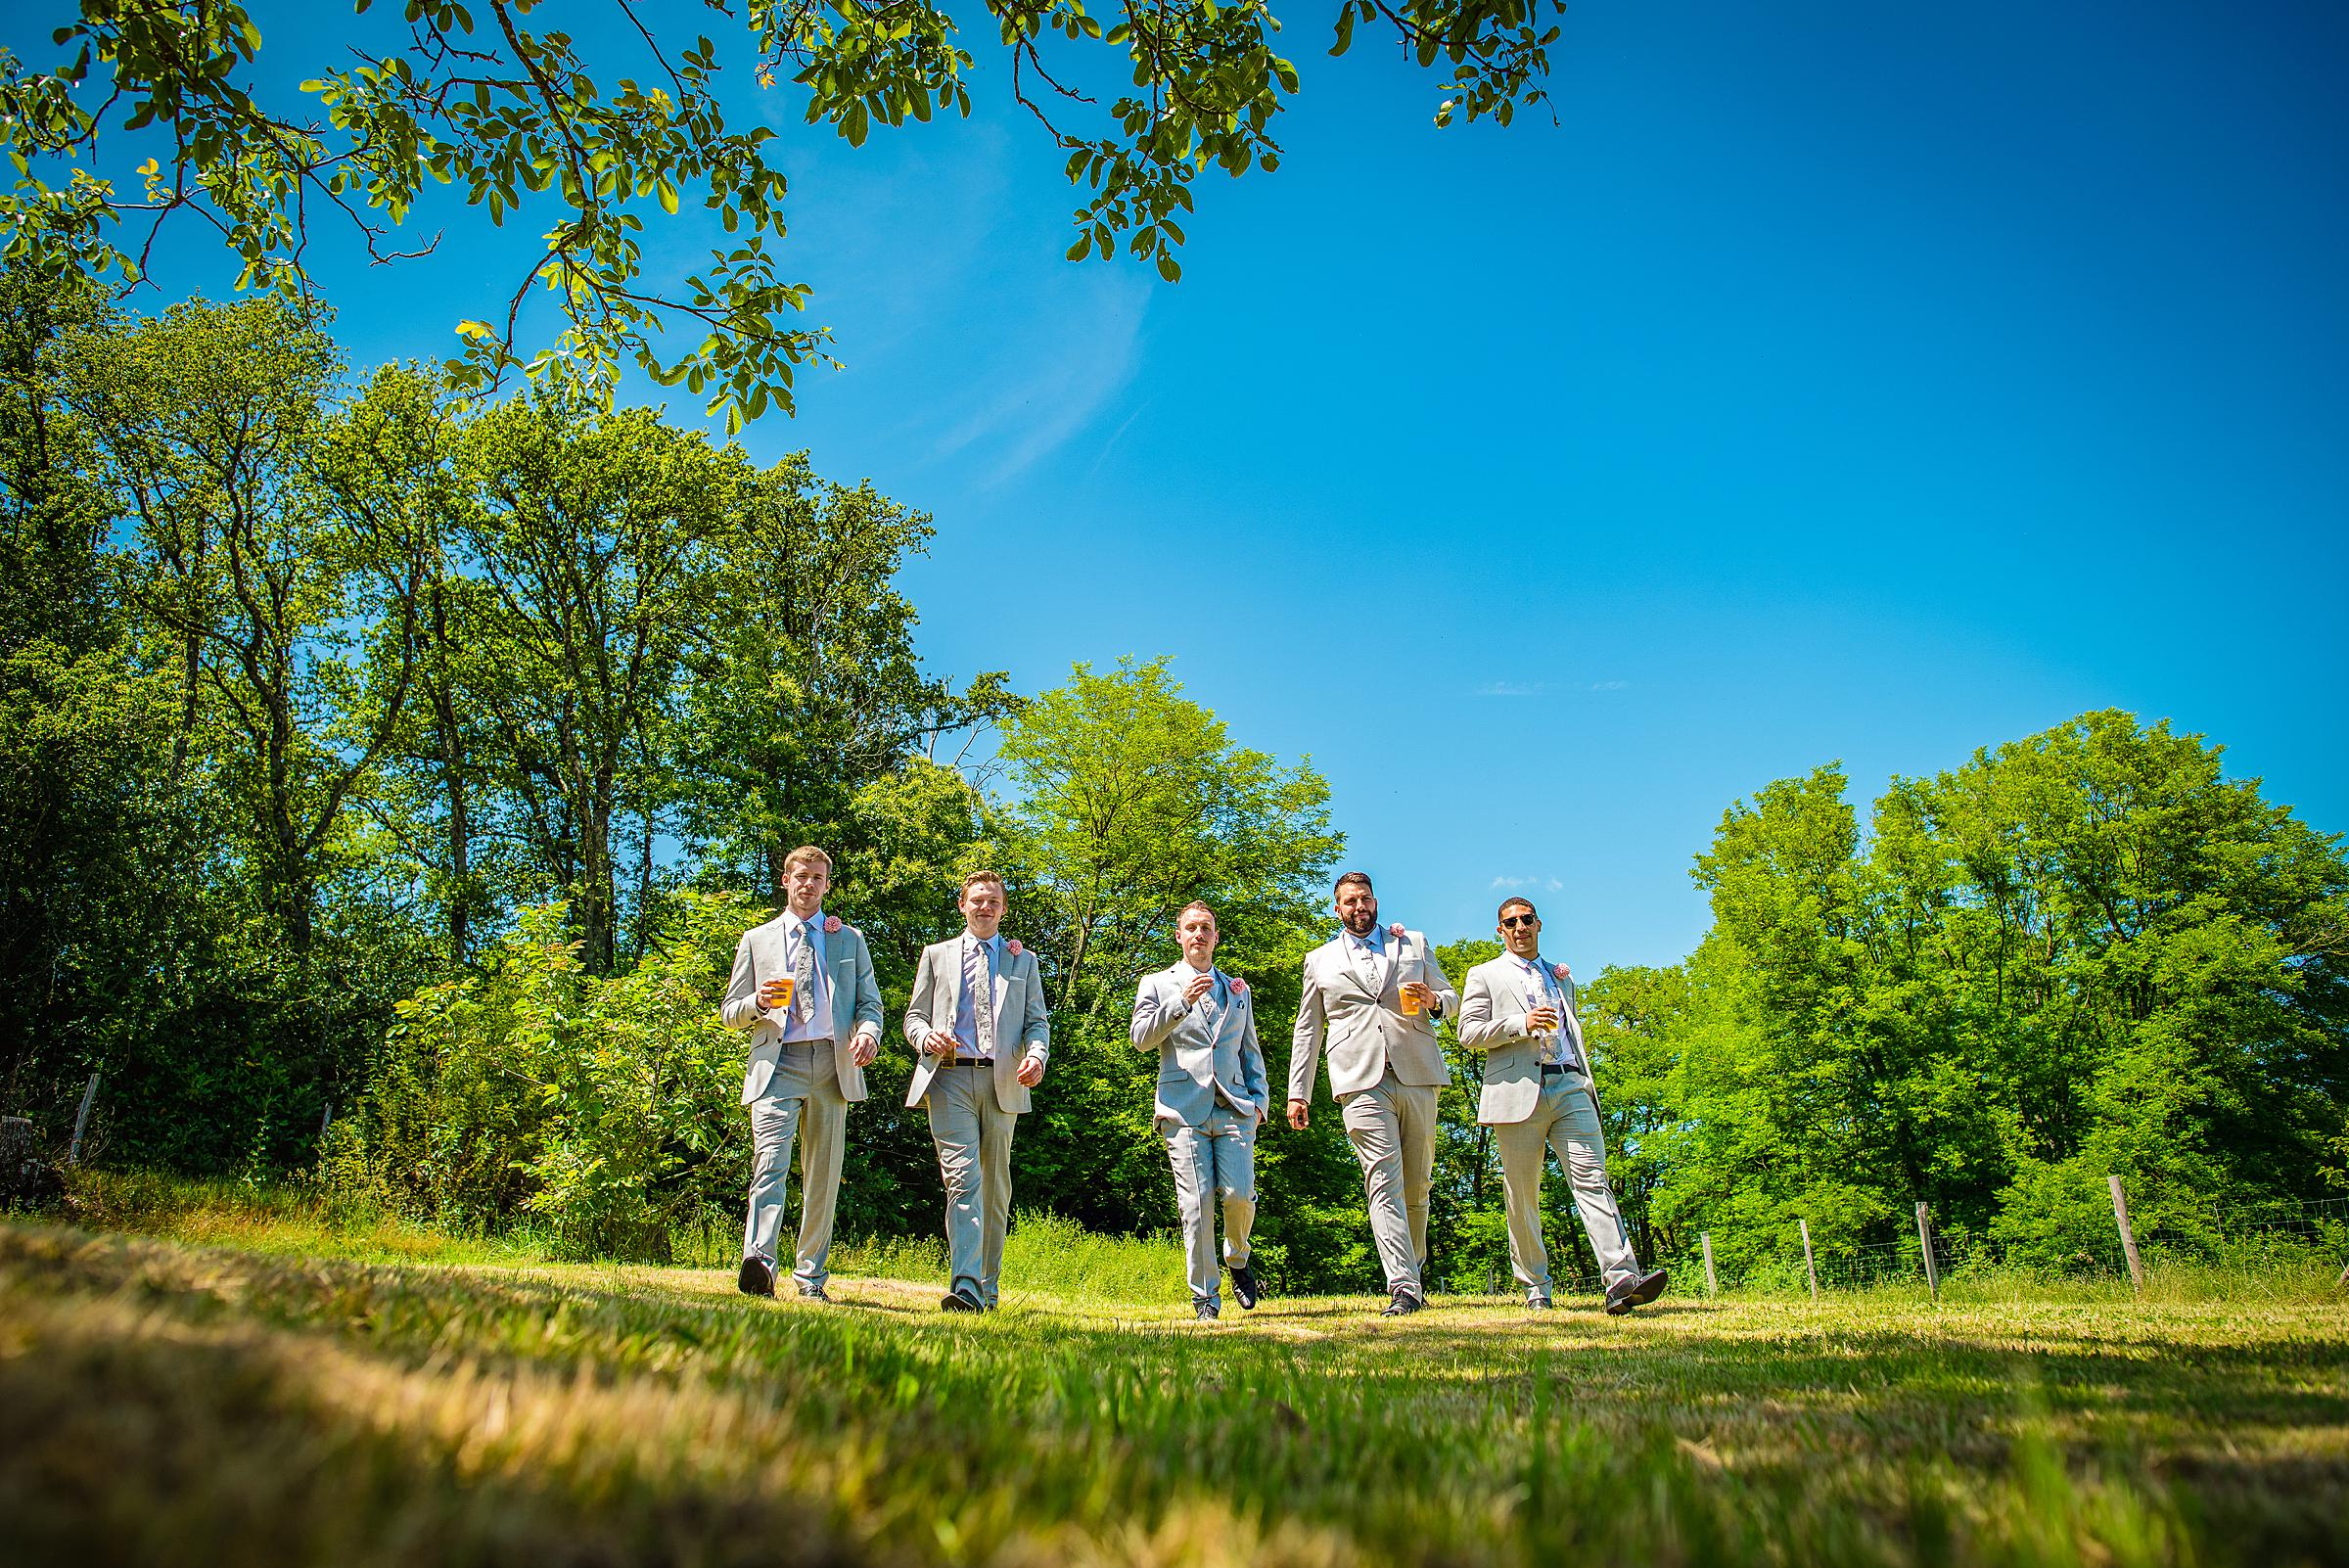 Back Garden Festival Wedding in France - Groomsmen